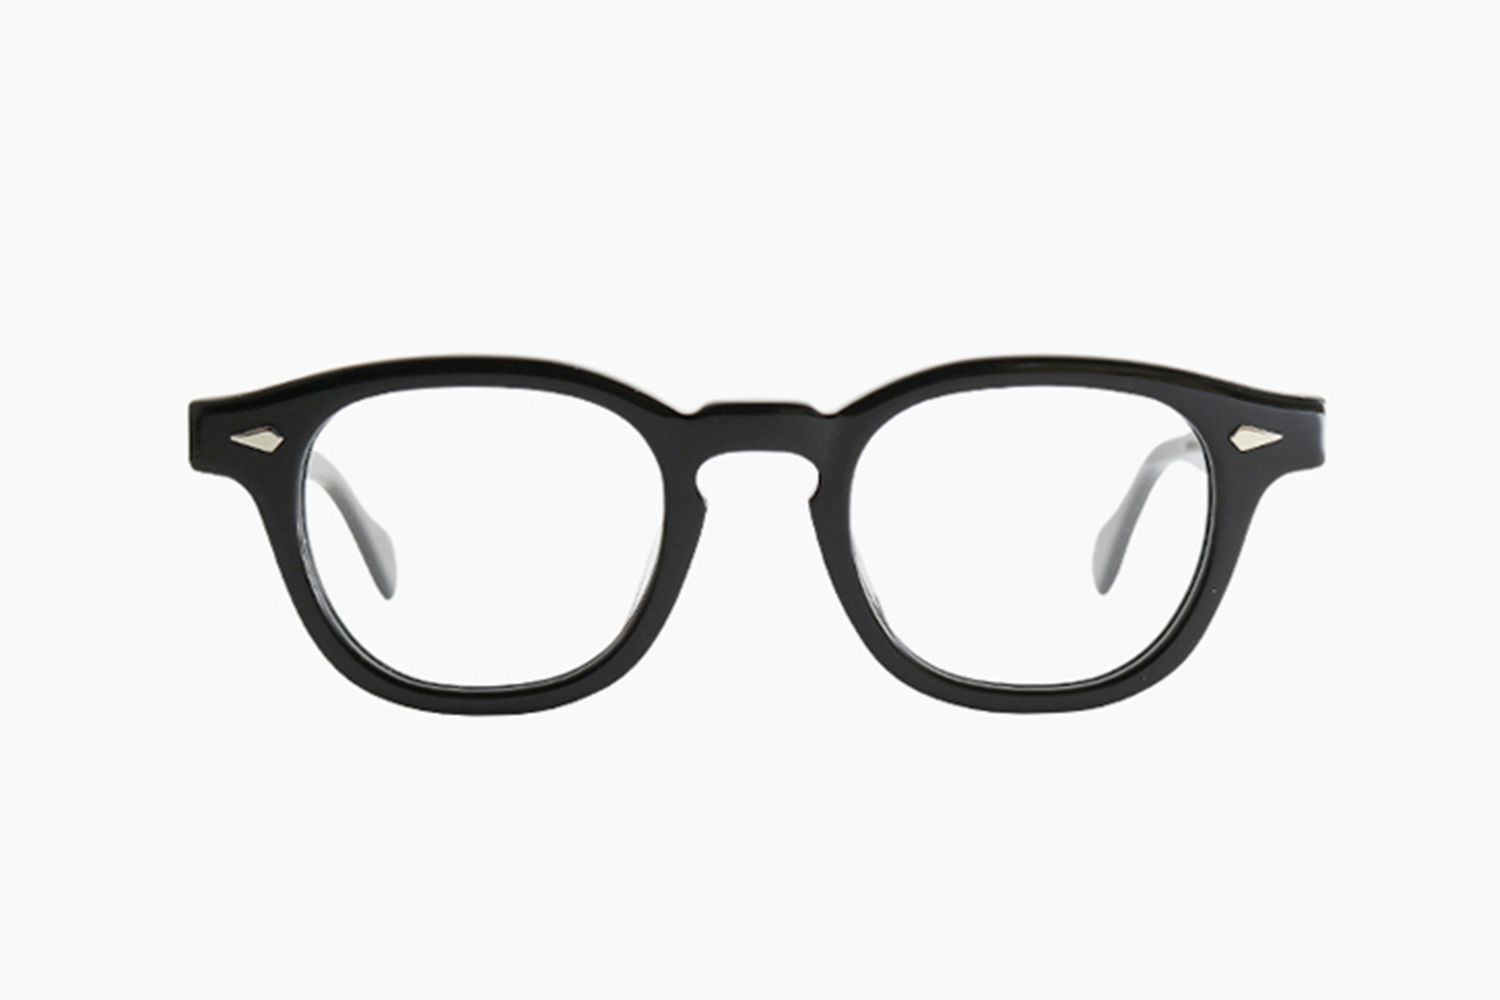 AR 44-22 – Black|JULIUS TART OPTICAL